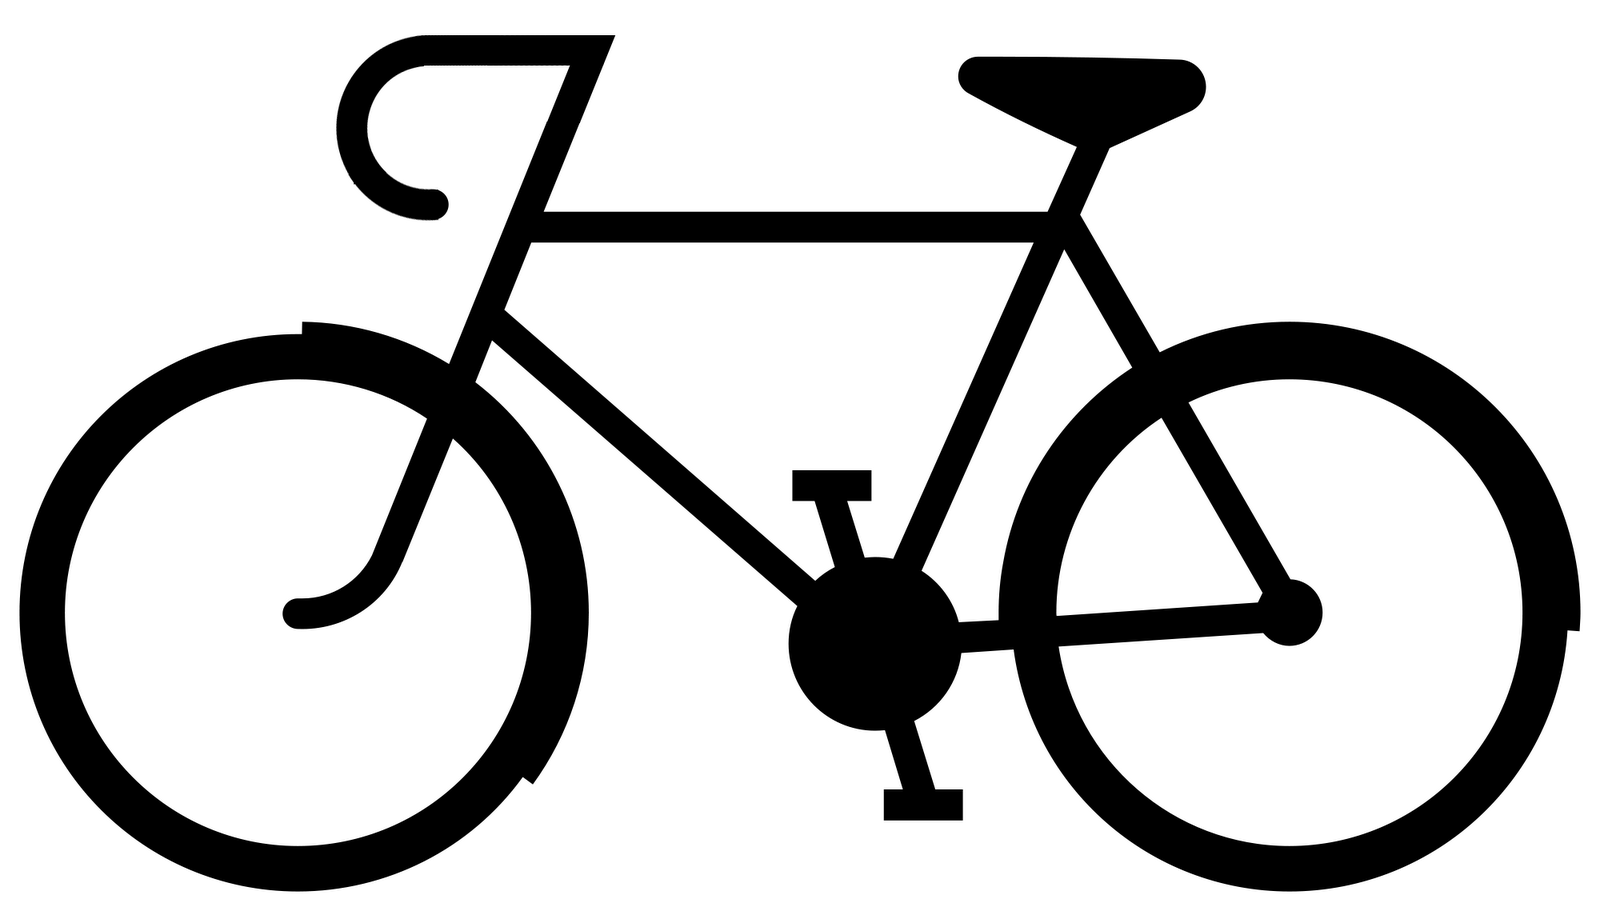 simple bike art 1080p - photo #11